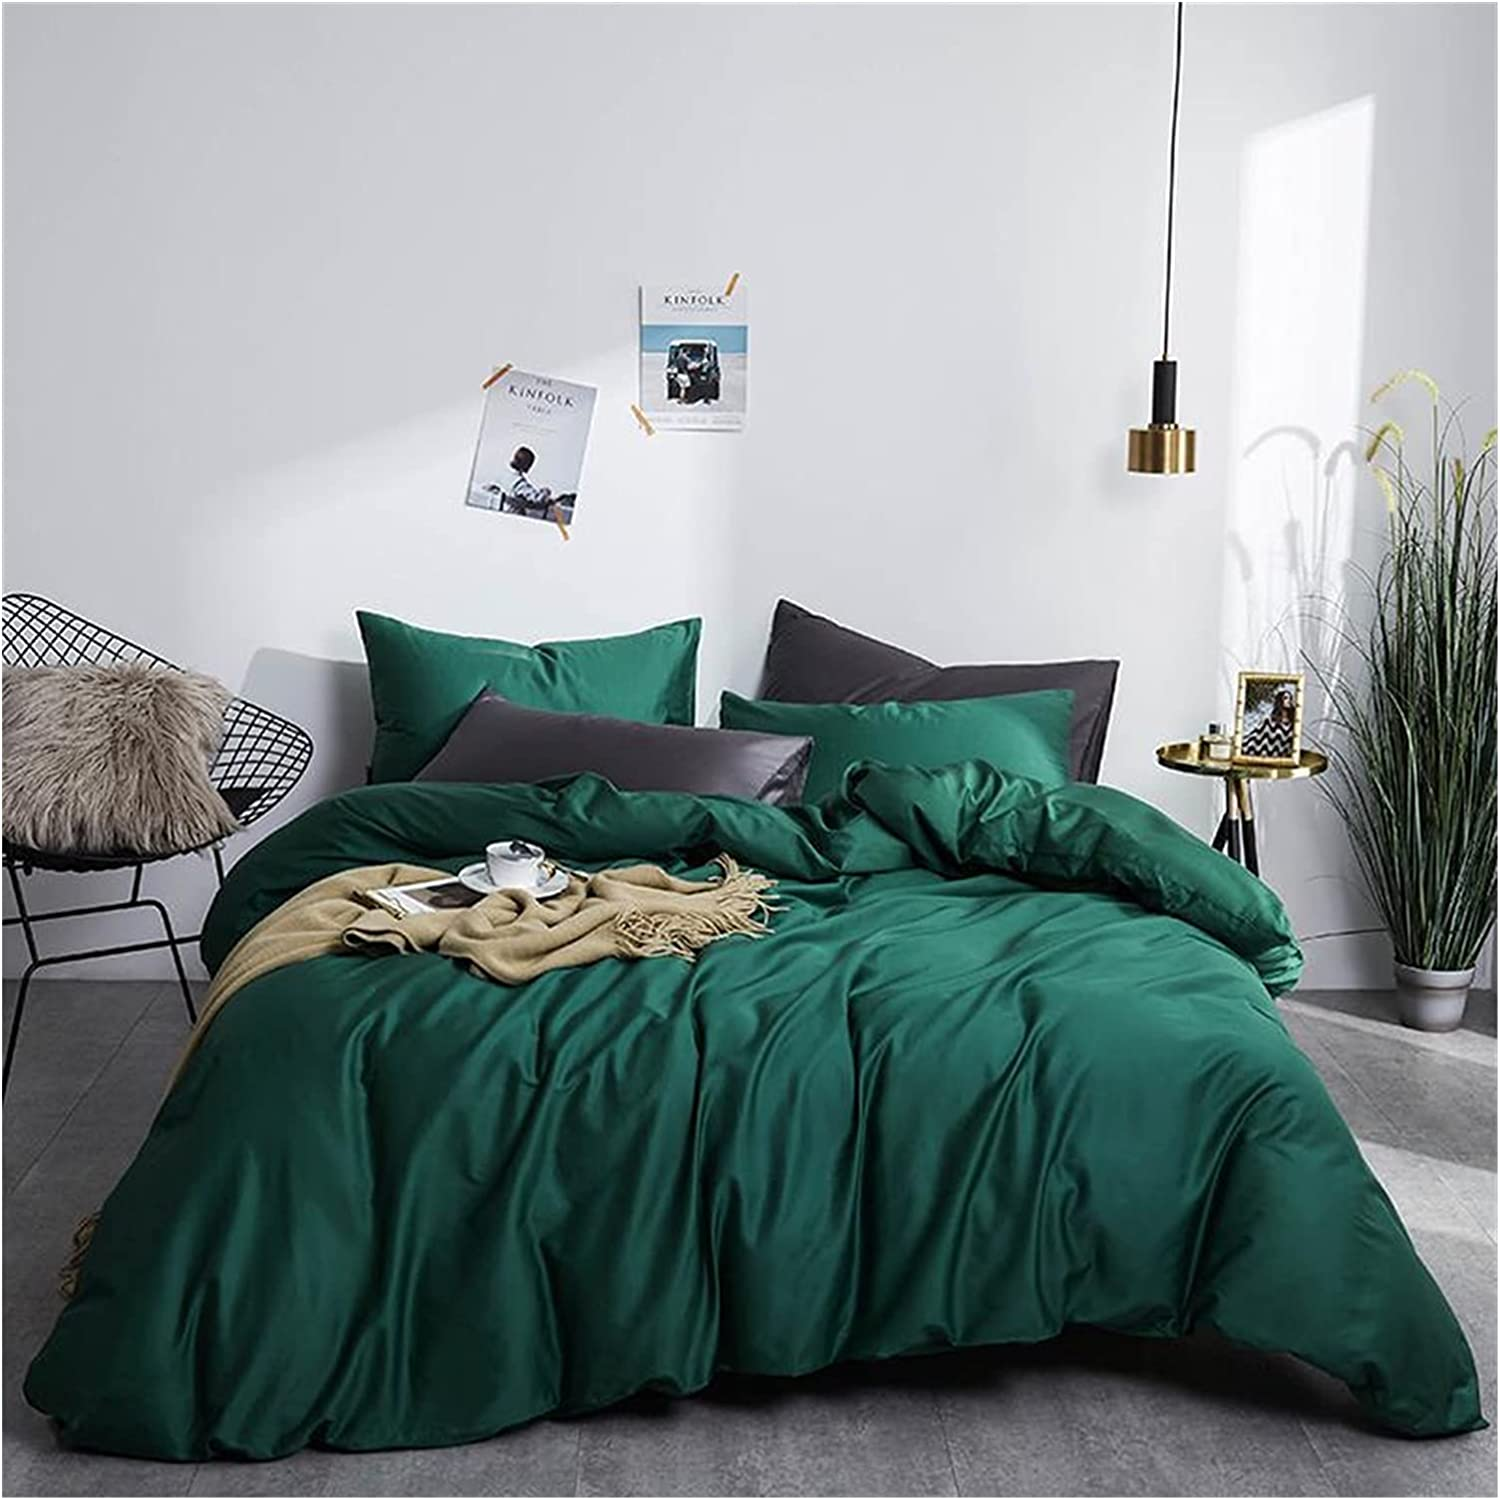 Long-awaited GT.S Silky Soft Pure Egyptian Cotton Color Bedding Solid Set Sales of SALE items from new works Fam